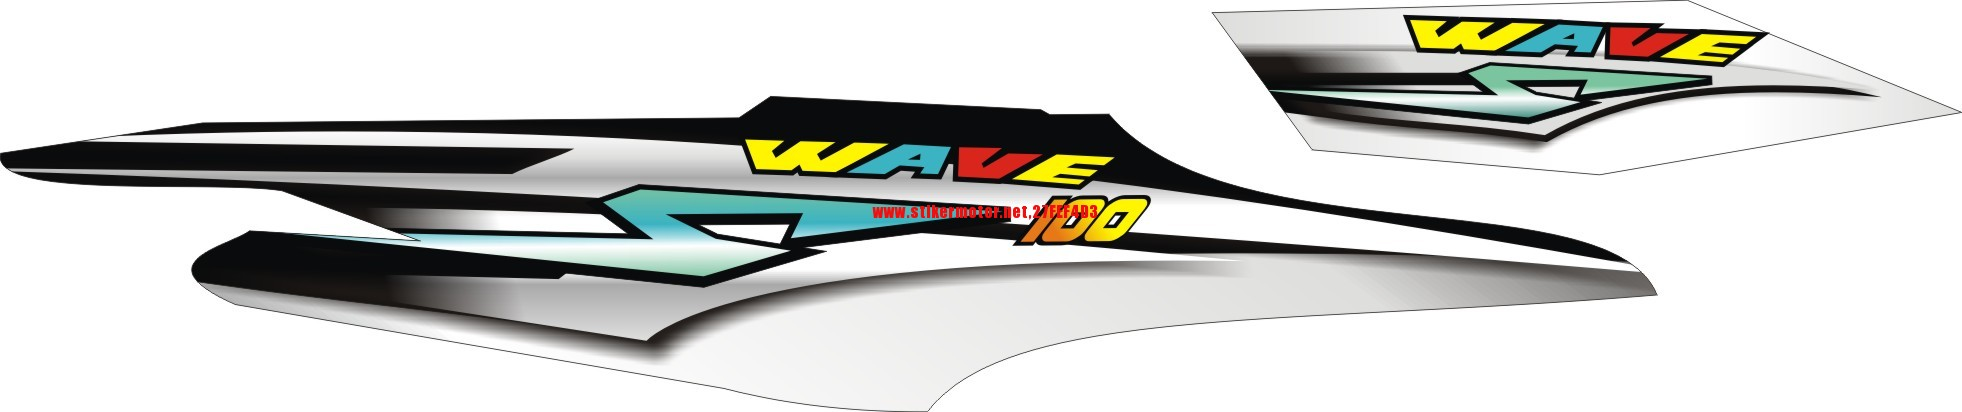 Sticker design for honda wave 100 - Striping Stiker Motor Honda Supra Fit Wave 2 Stikermotor Net Stikermotor Net